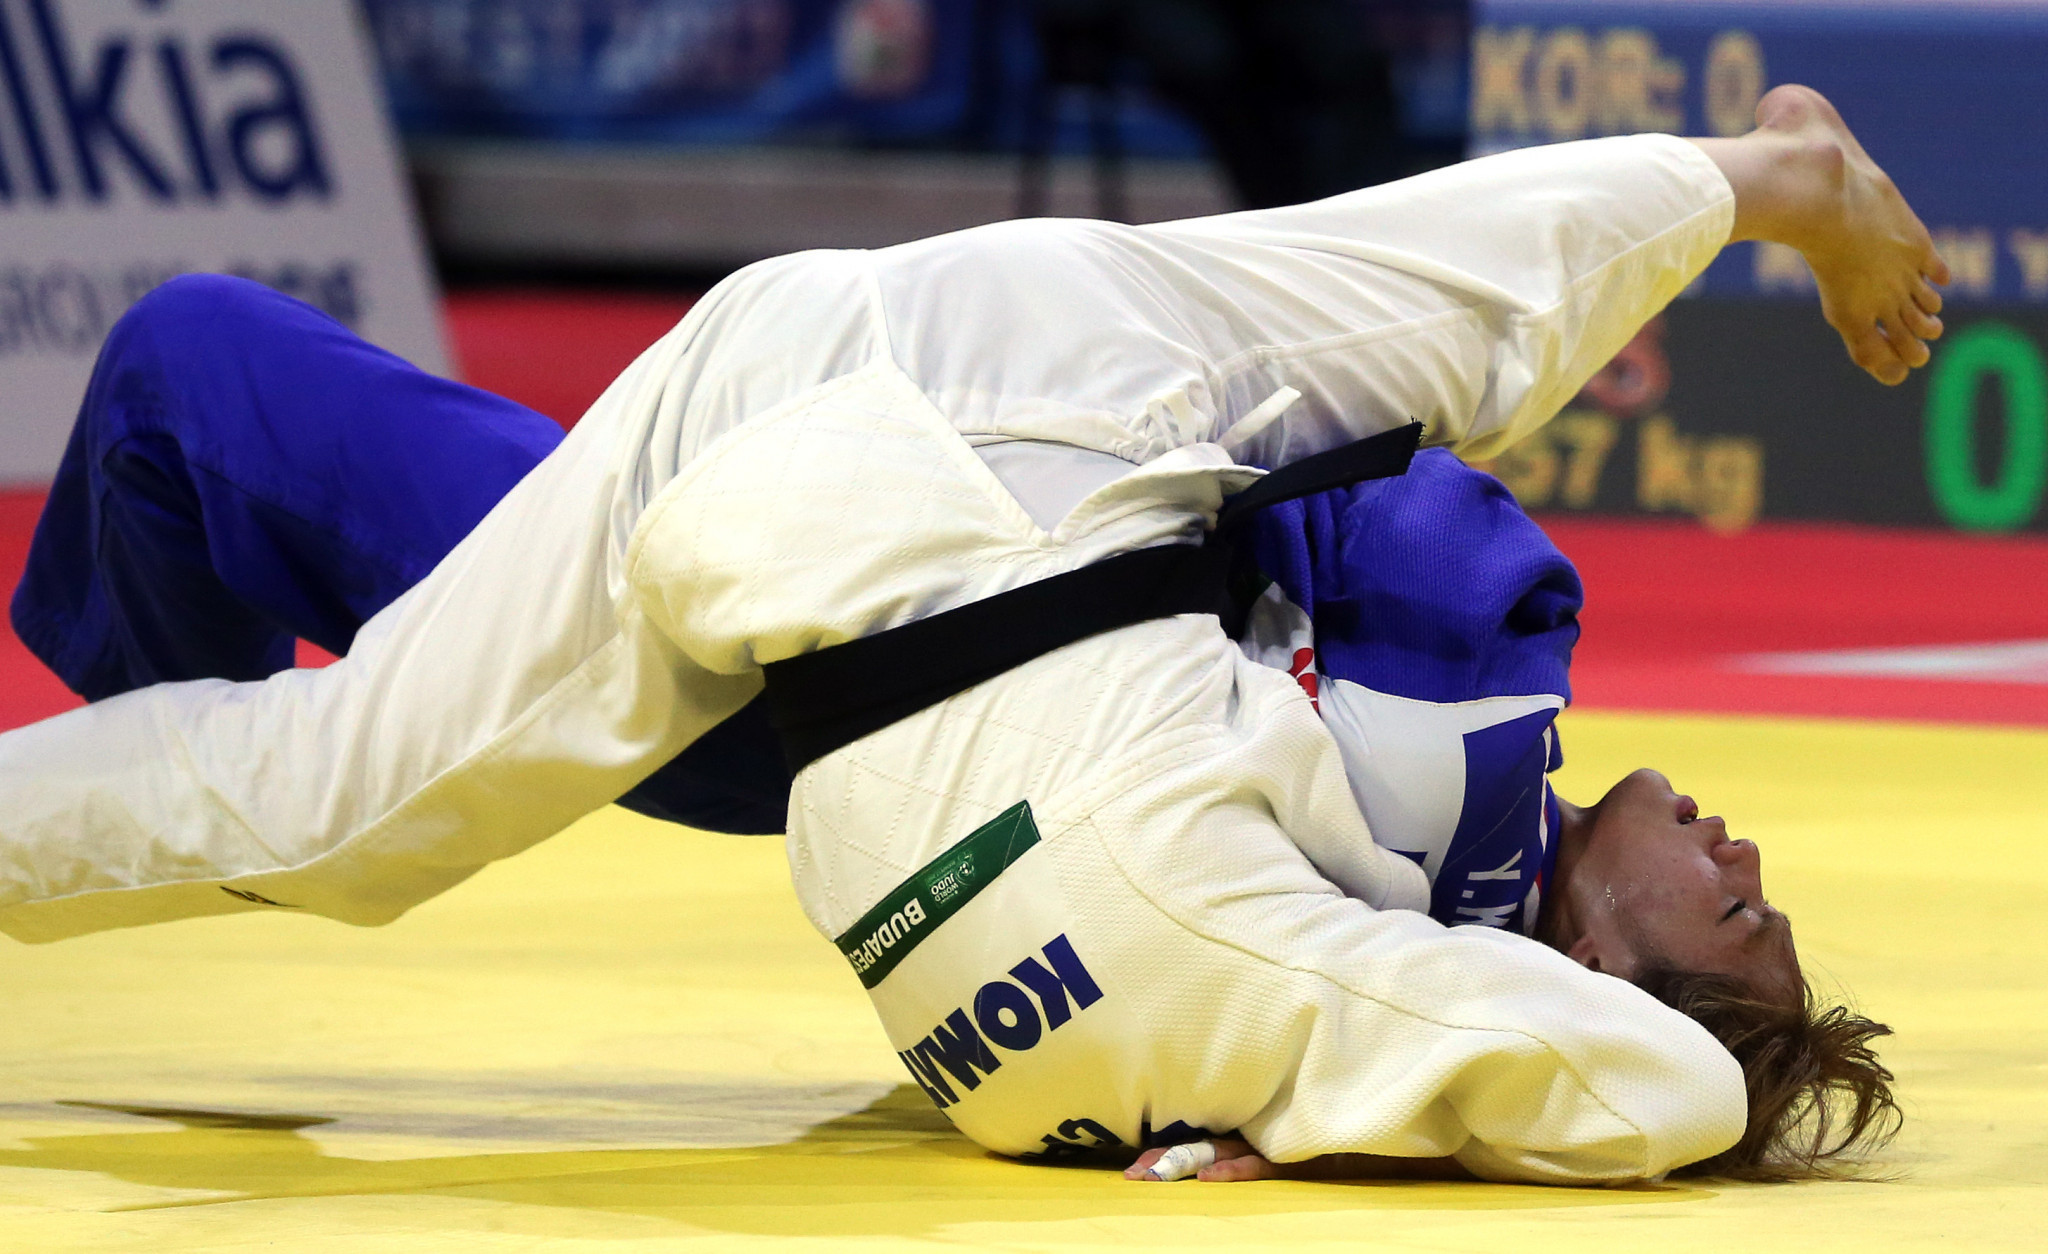 The László Papp Budapest Sports Arena last held the World Judo Championships in 2017 ©Getty Images